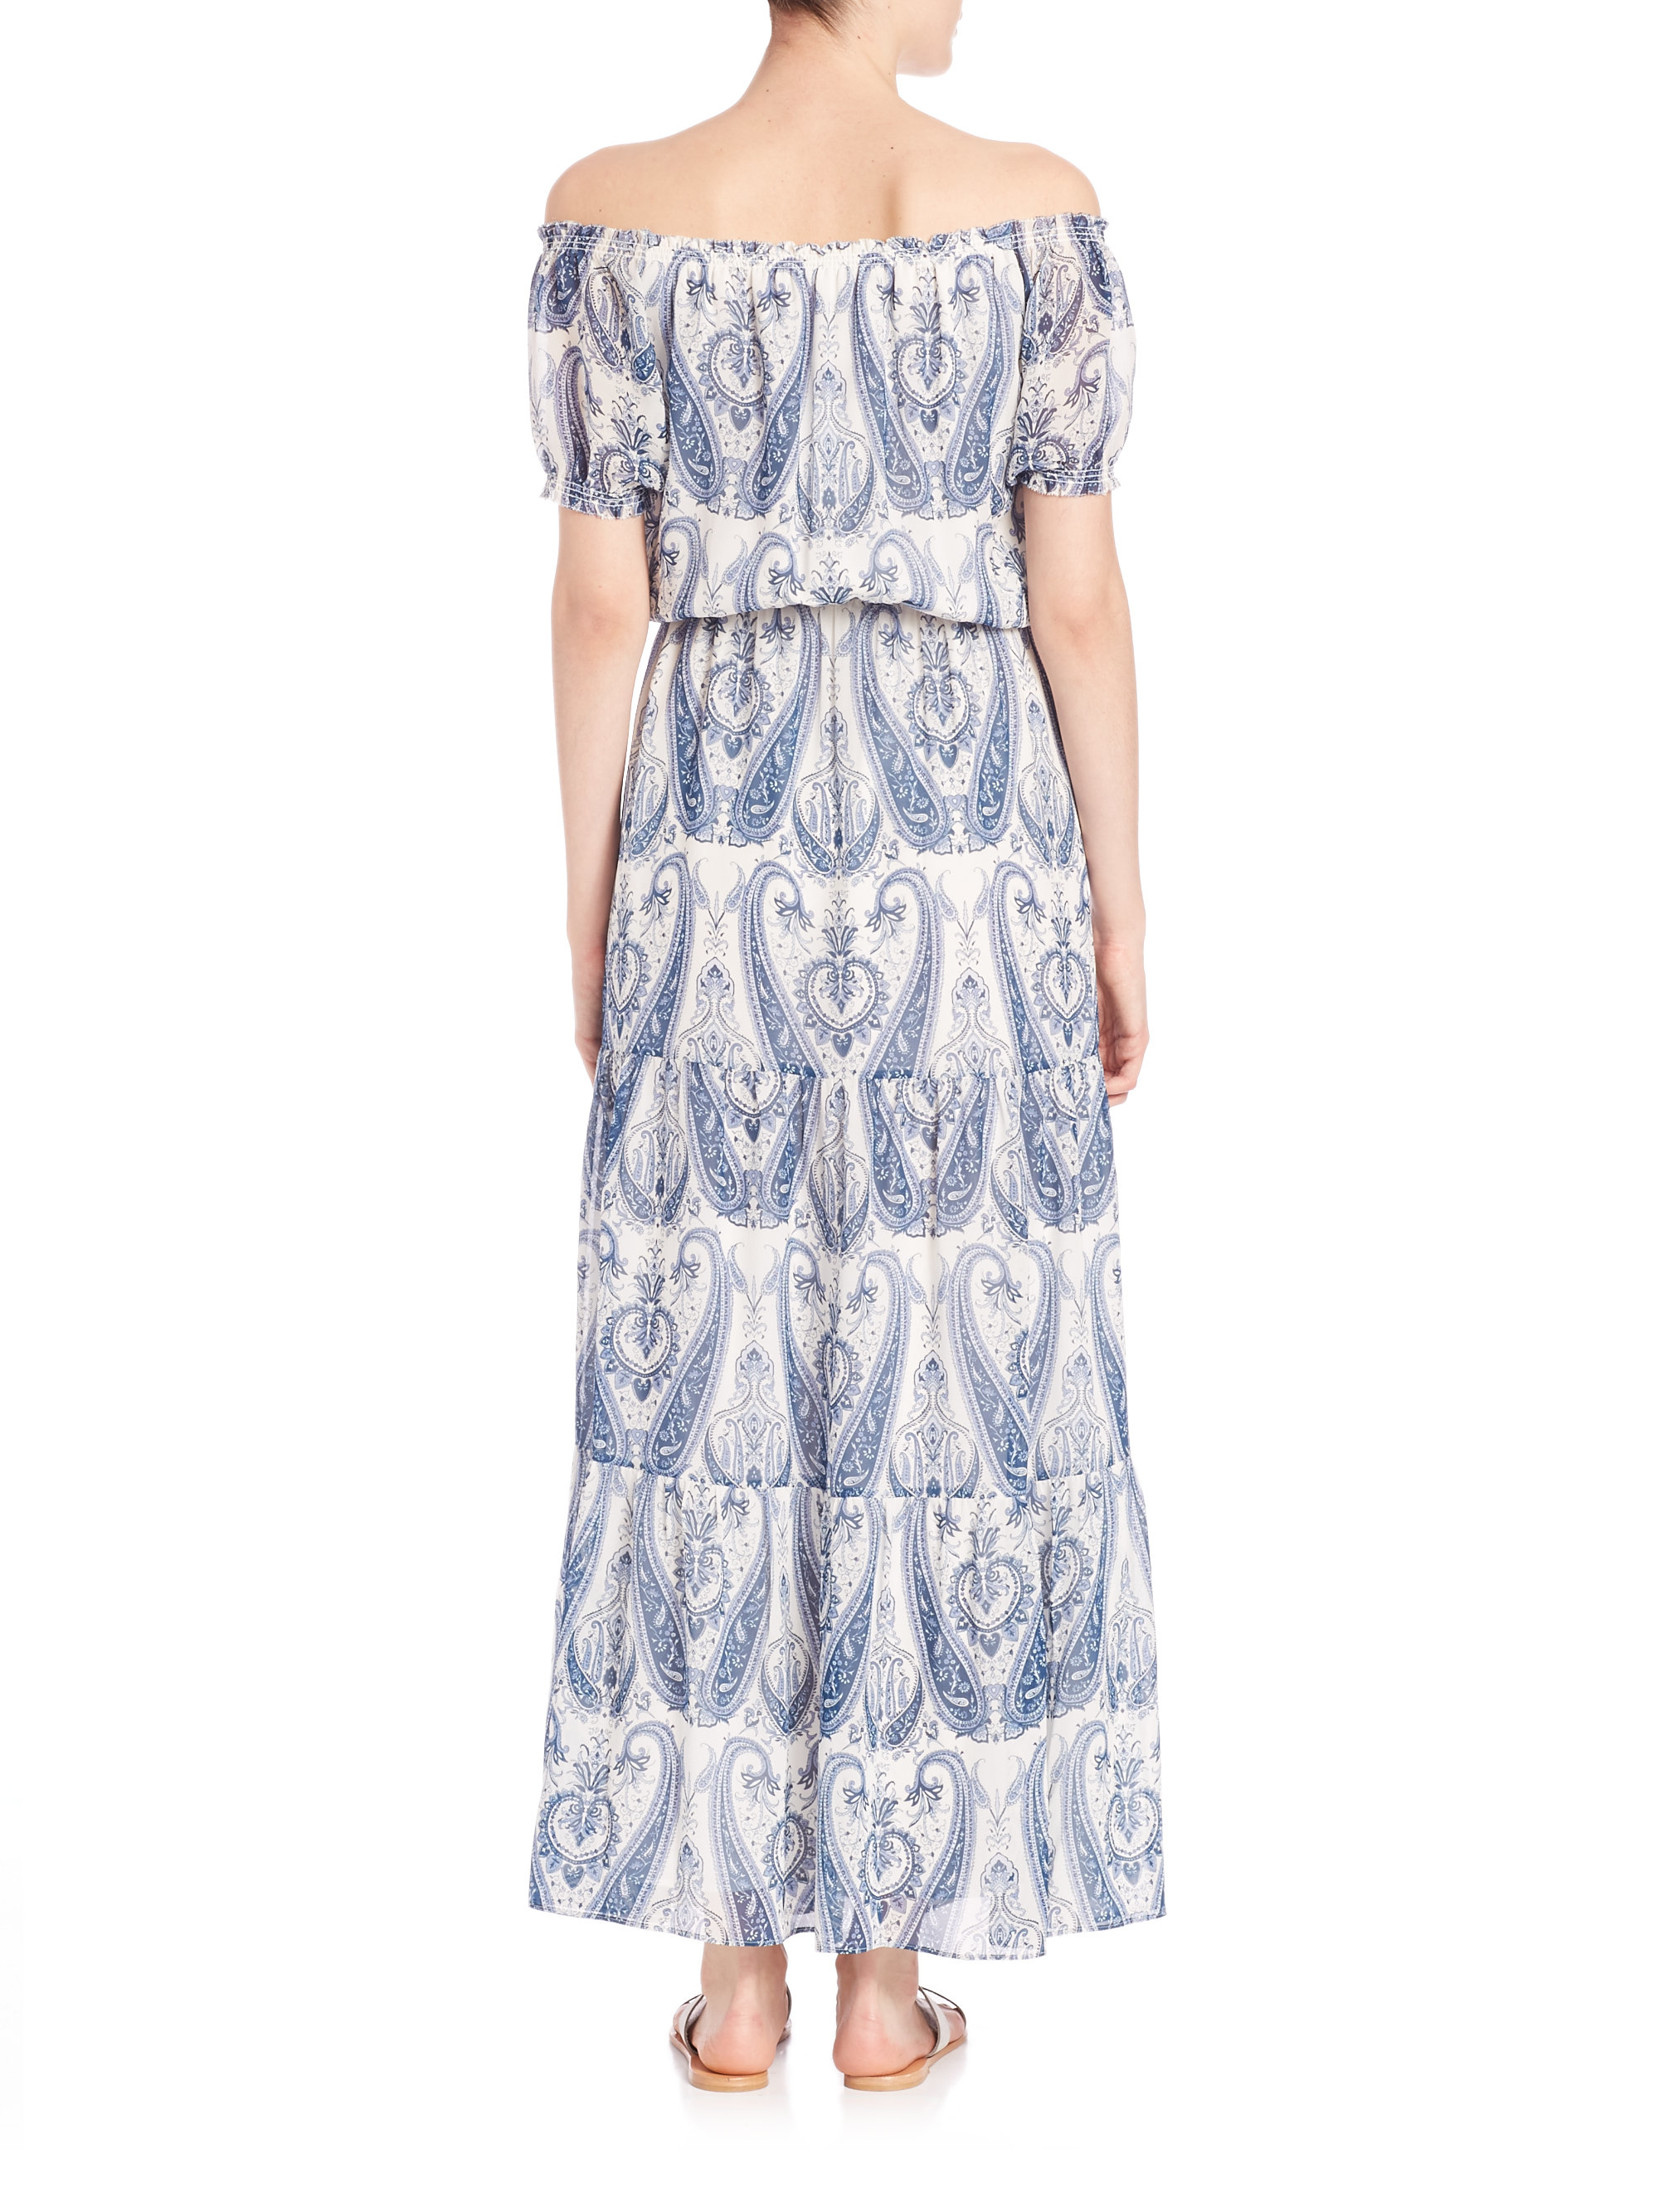 d943fb2e4 Joie Villy Printed Silk Off-the-shoulder Dress in Gray - Lyst